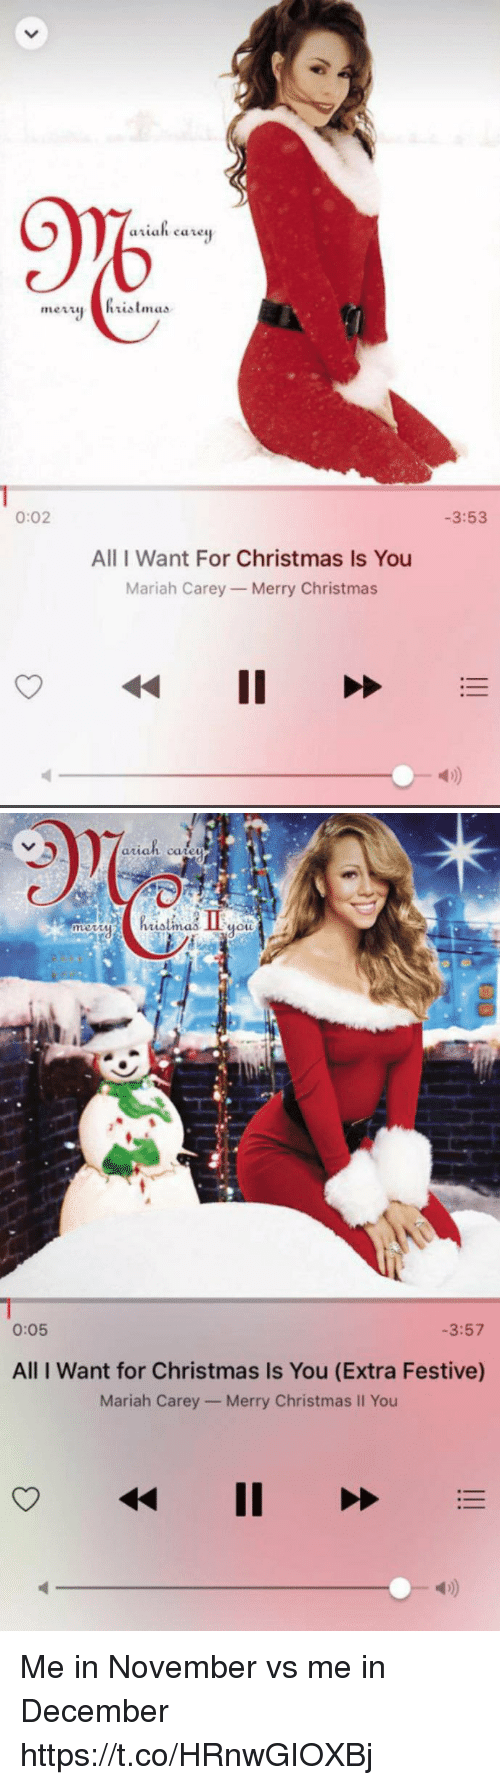 All I Want for Christmas Is You, Christmas, and Funny: 9%  -3:53  0:02  All I Want For Christmas Is You  Mariah Carey Merry Christmas  4D)   arian ca  hrialimas  0:05  -3:57  All I Want for Christmas Is You (Extra Festive)  Mariah Carey- Merry Christmas Il You  4) Me in November vs me in December https://t.co/HRnwGIOXBj